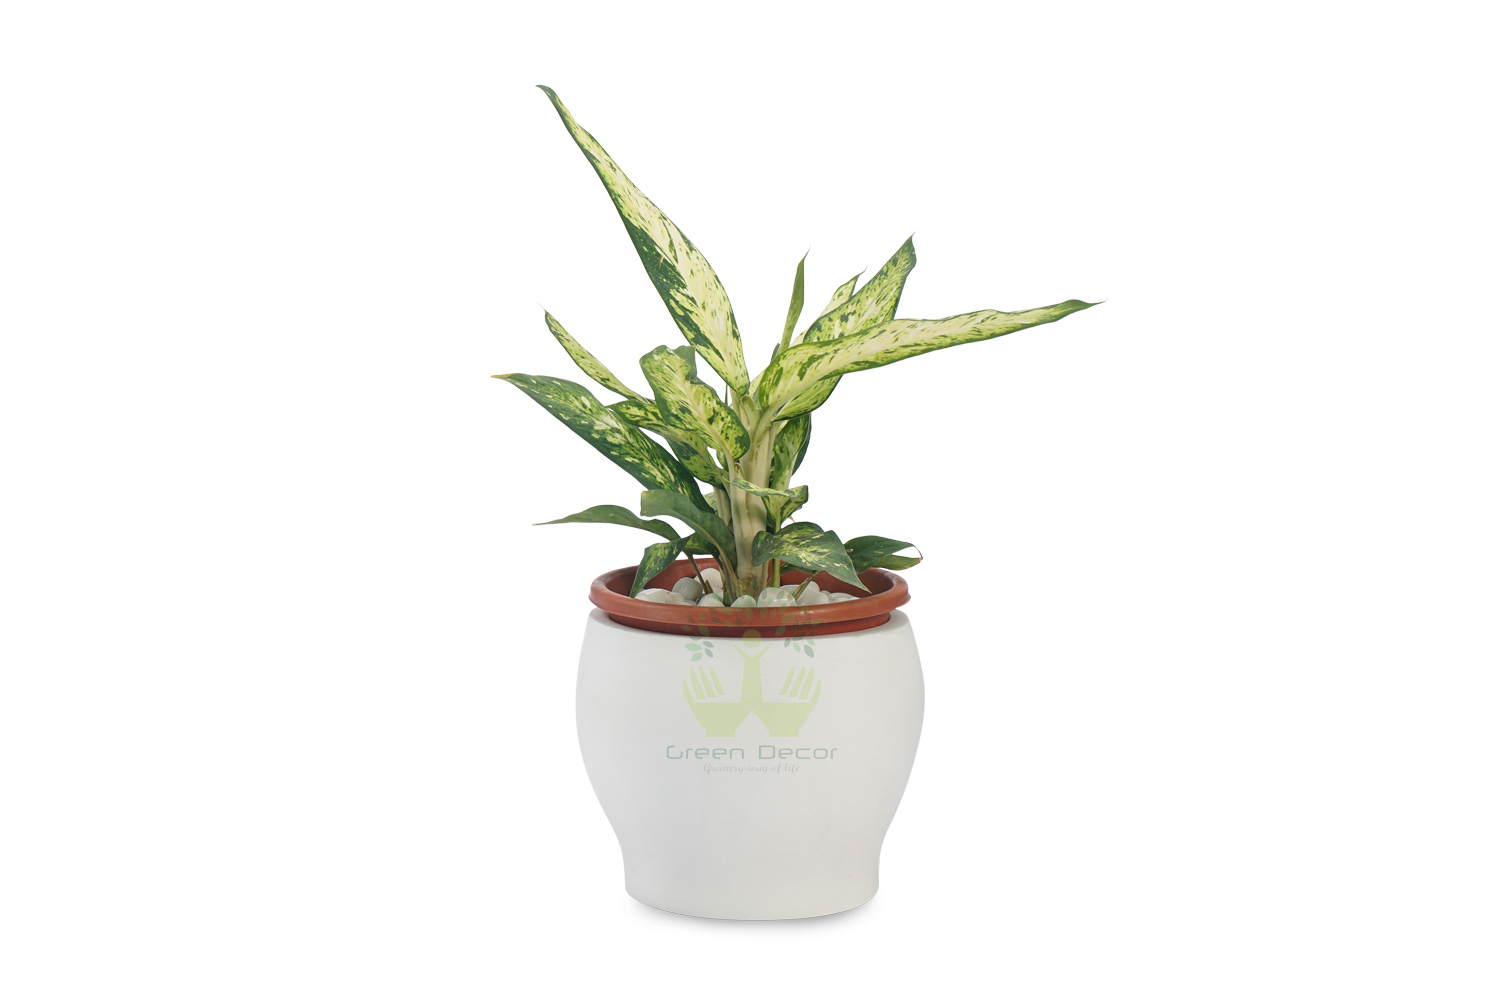 Buy Aglaonema Philipica Plants , White Pots and seeds in Delhi NCR by the best online nursery shop Greendecor.